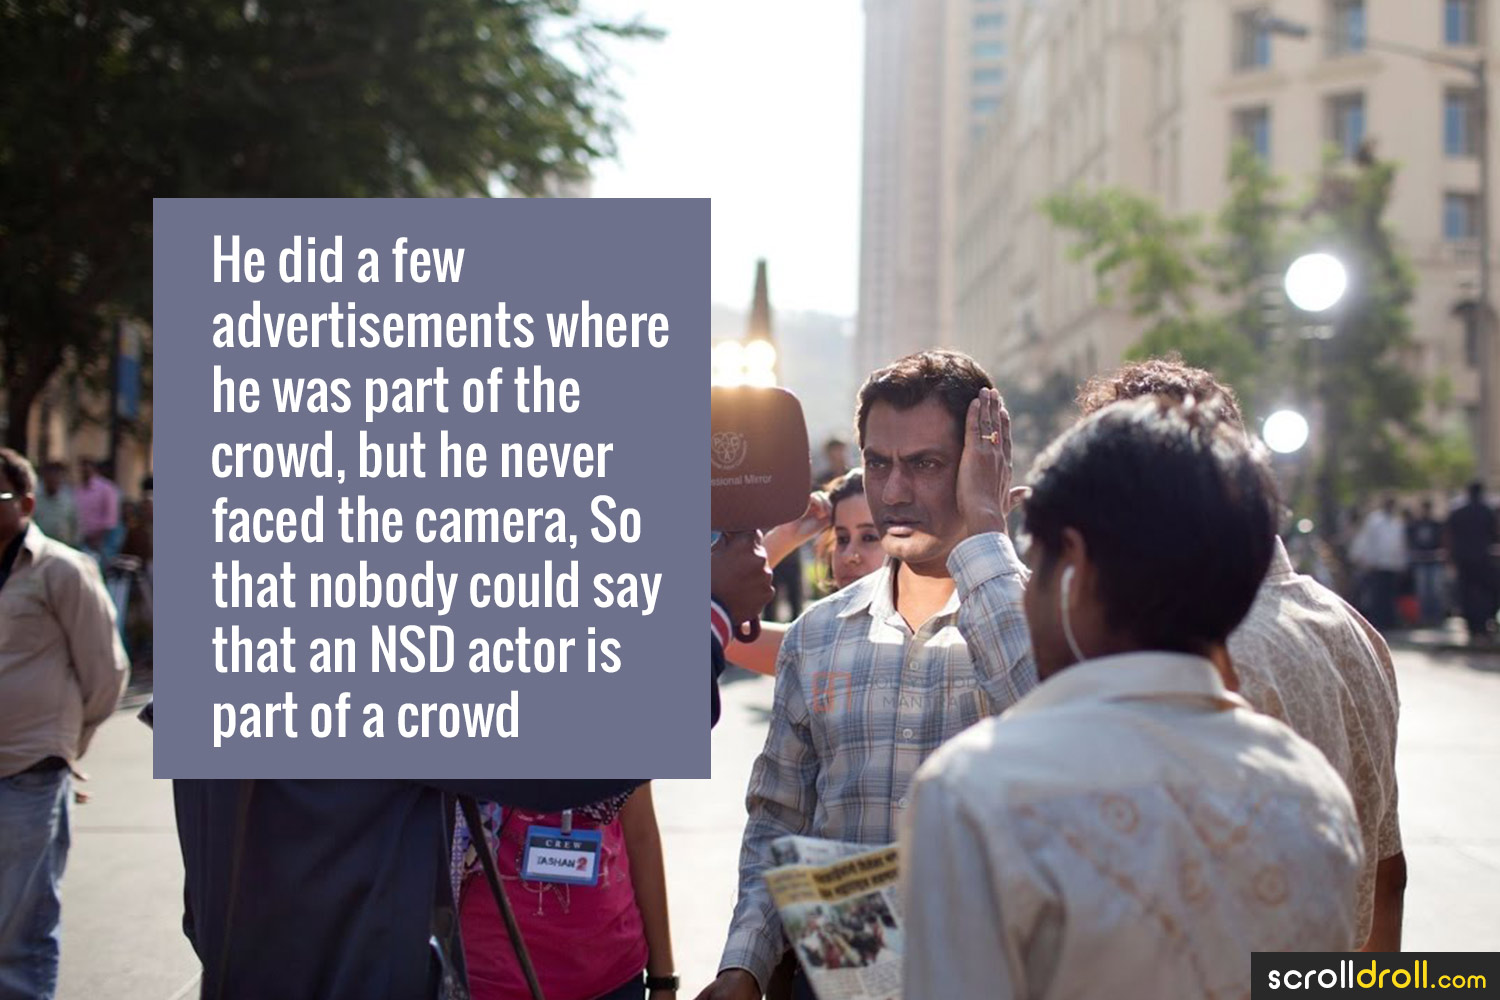 Facts about Nawazuddin Siddique-He did a few advertisements where he was part of the crowd,but he never faced the camera,So that nobody could say that an NSD actor is part of crowd